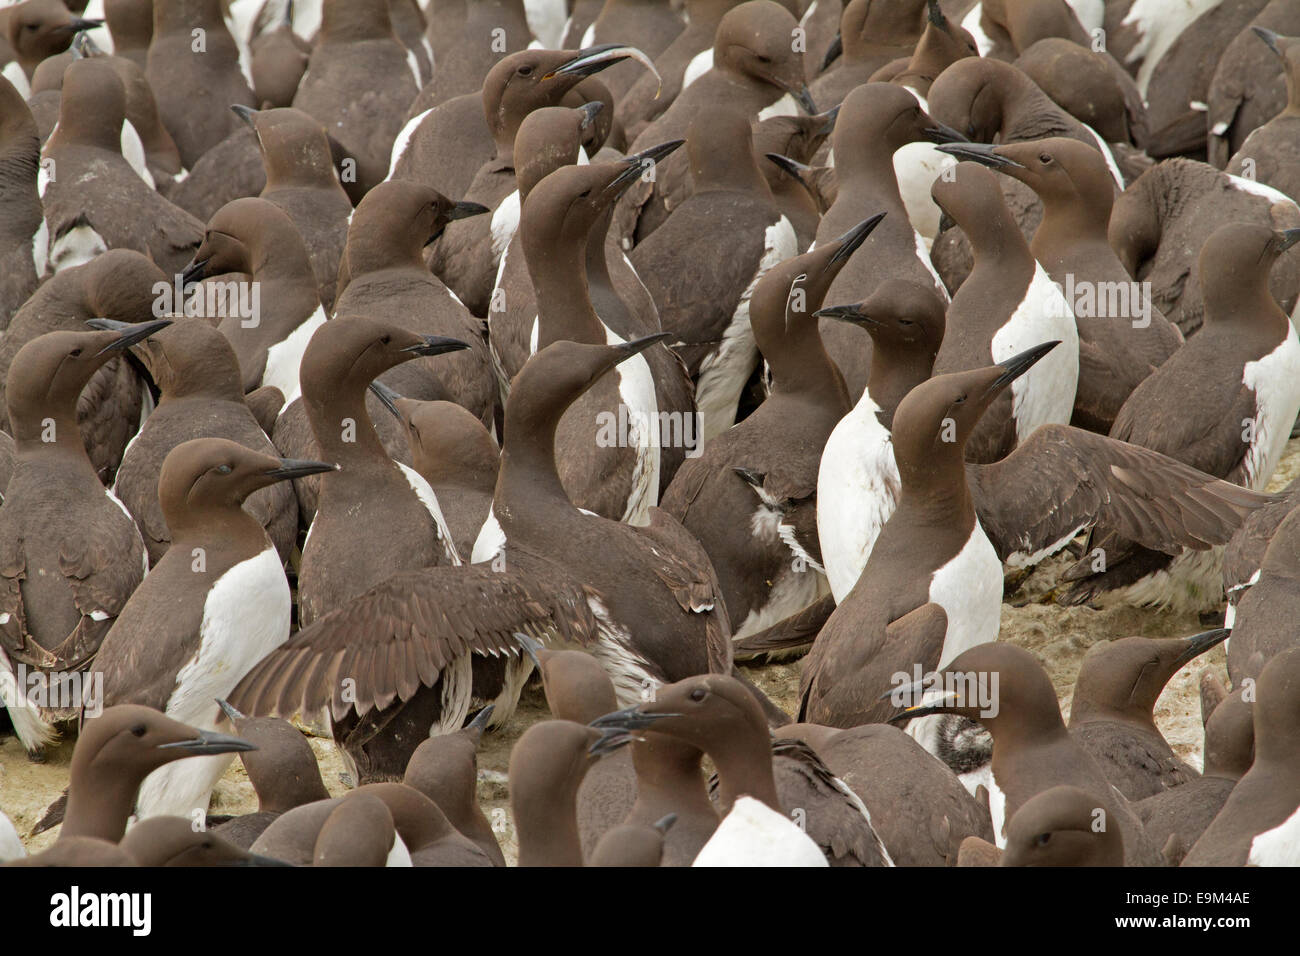 Close up of crowd of nesting guillemots / murres, Uria aalge, showing bodies & faces of numerous birds, one with Stock Photo